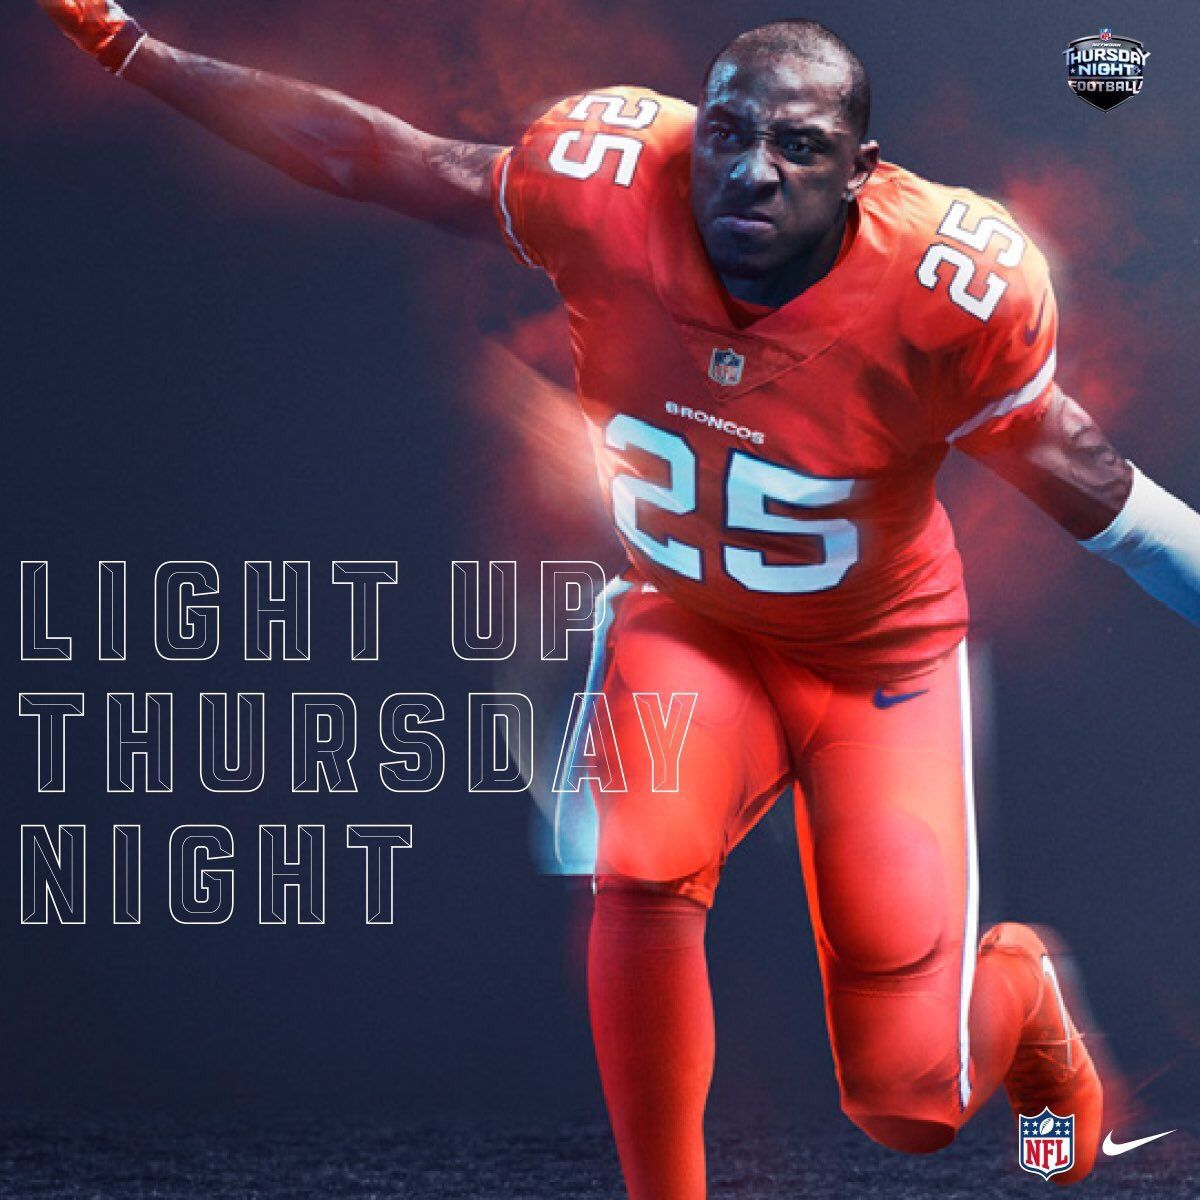 73eb96cc3 denver broncos color rush - Twitter Search